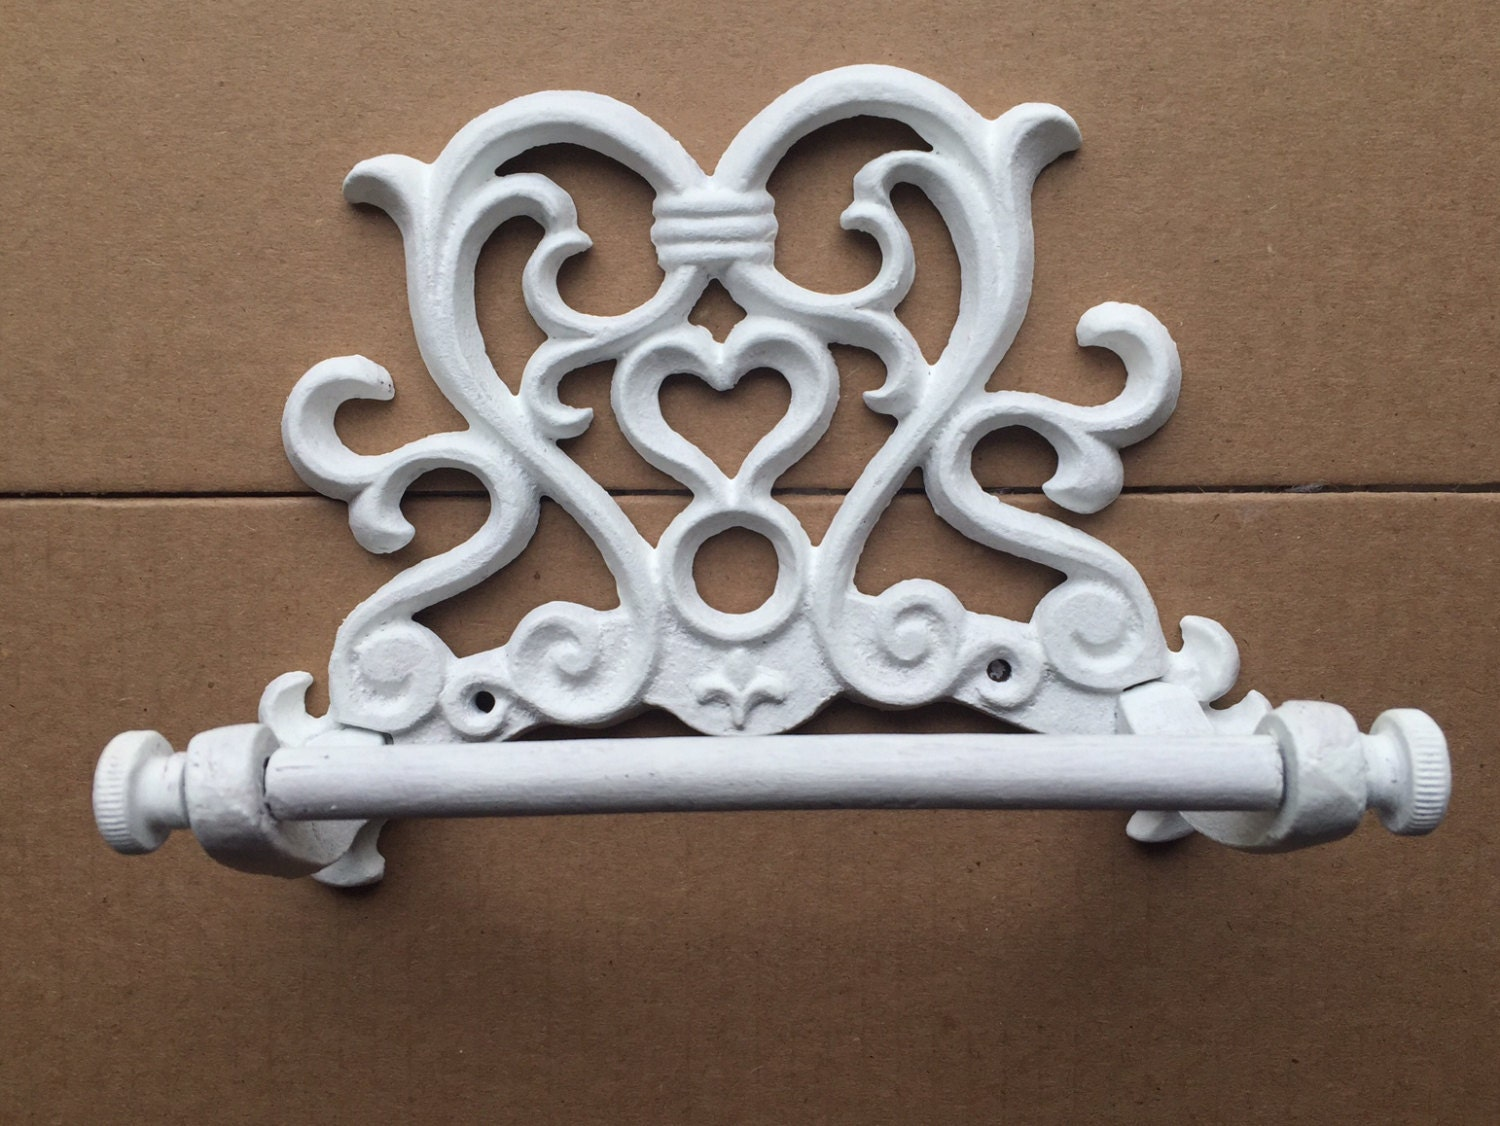 Toilet Paper Wall Holder White Cast Iron Scroll Design